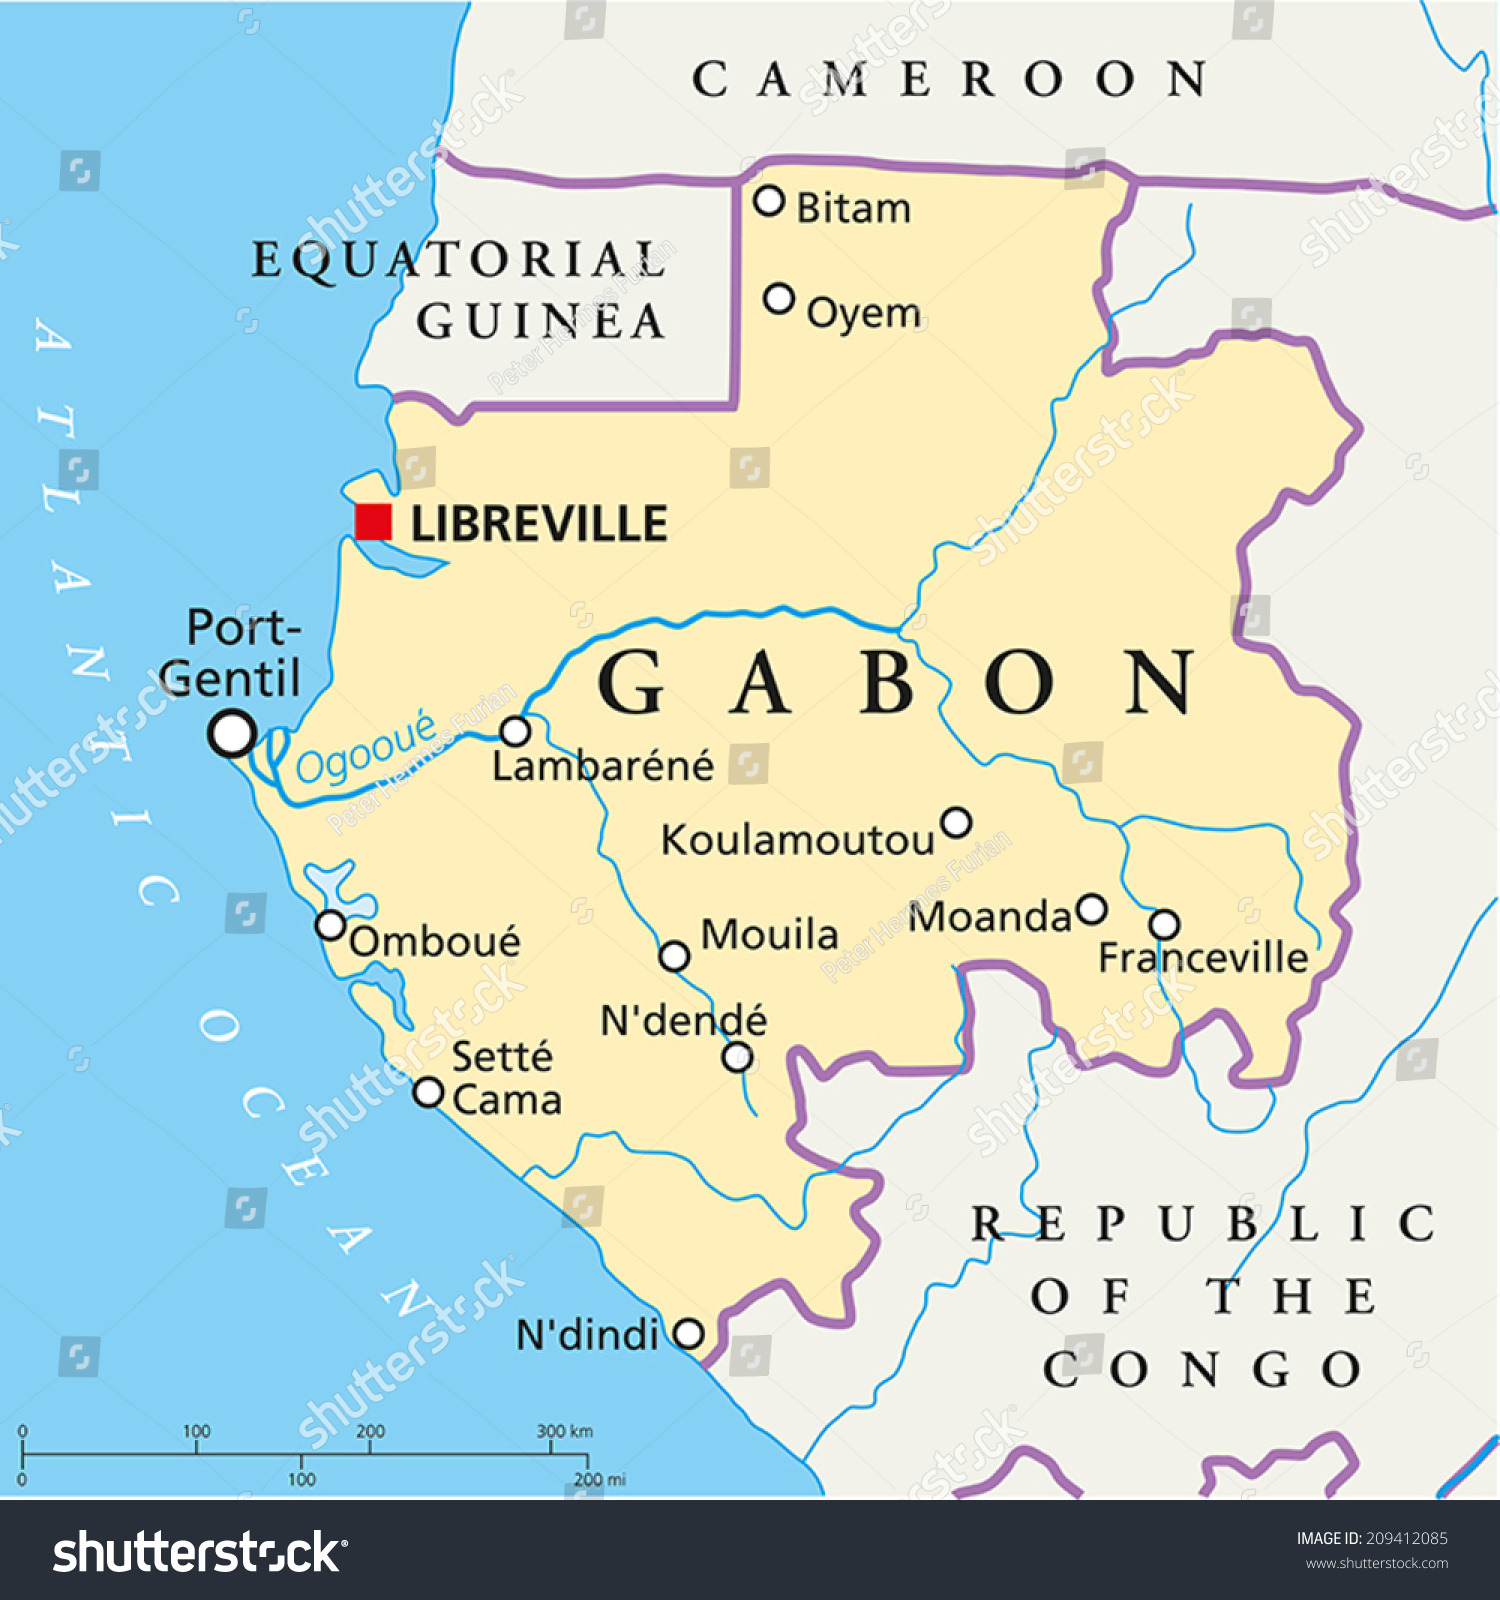 Gabon Political Map Capital Libreville National Stock Vector - Gabon map